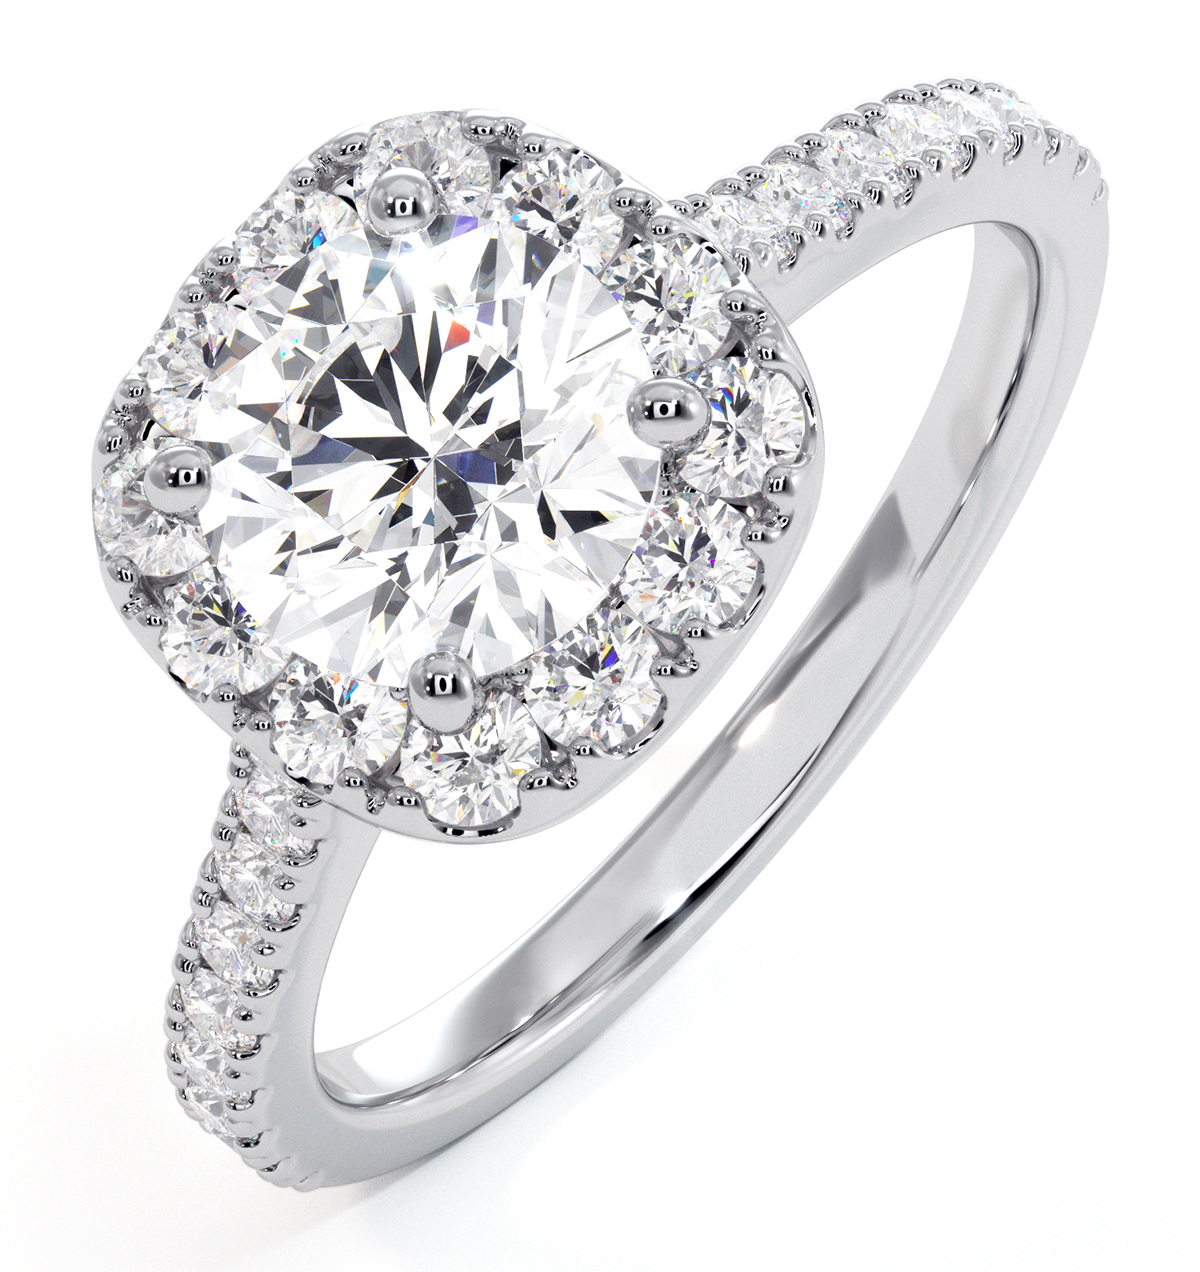 Elizabeth GIA Diamond Halo Engagement Ring in Platinum 1.70ct G/VS1 - image 1